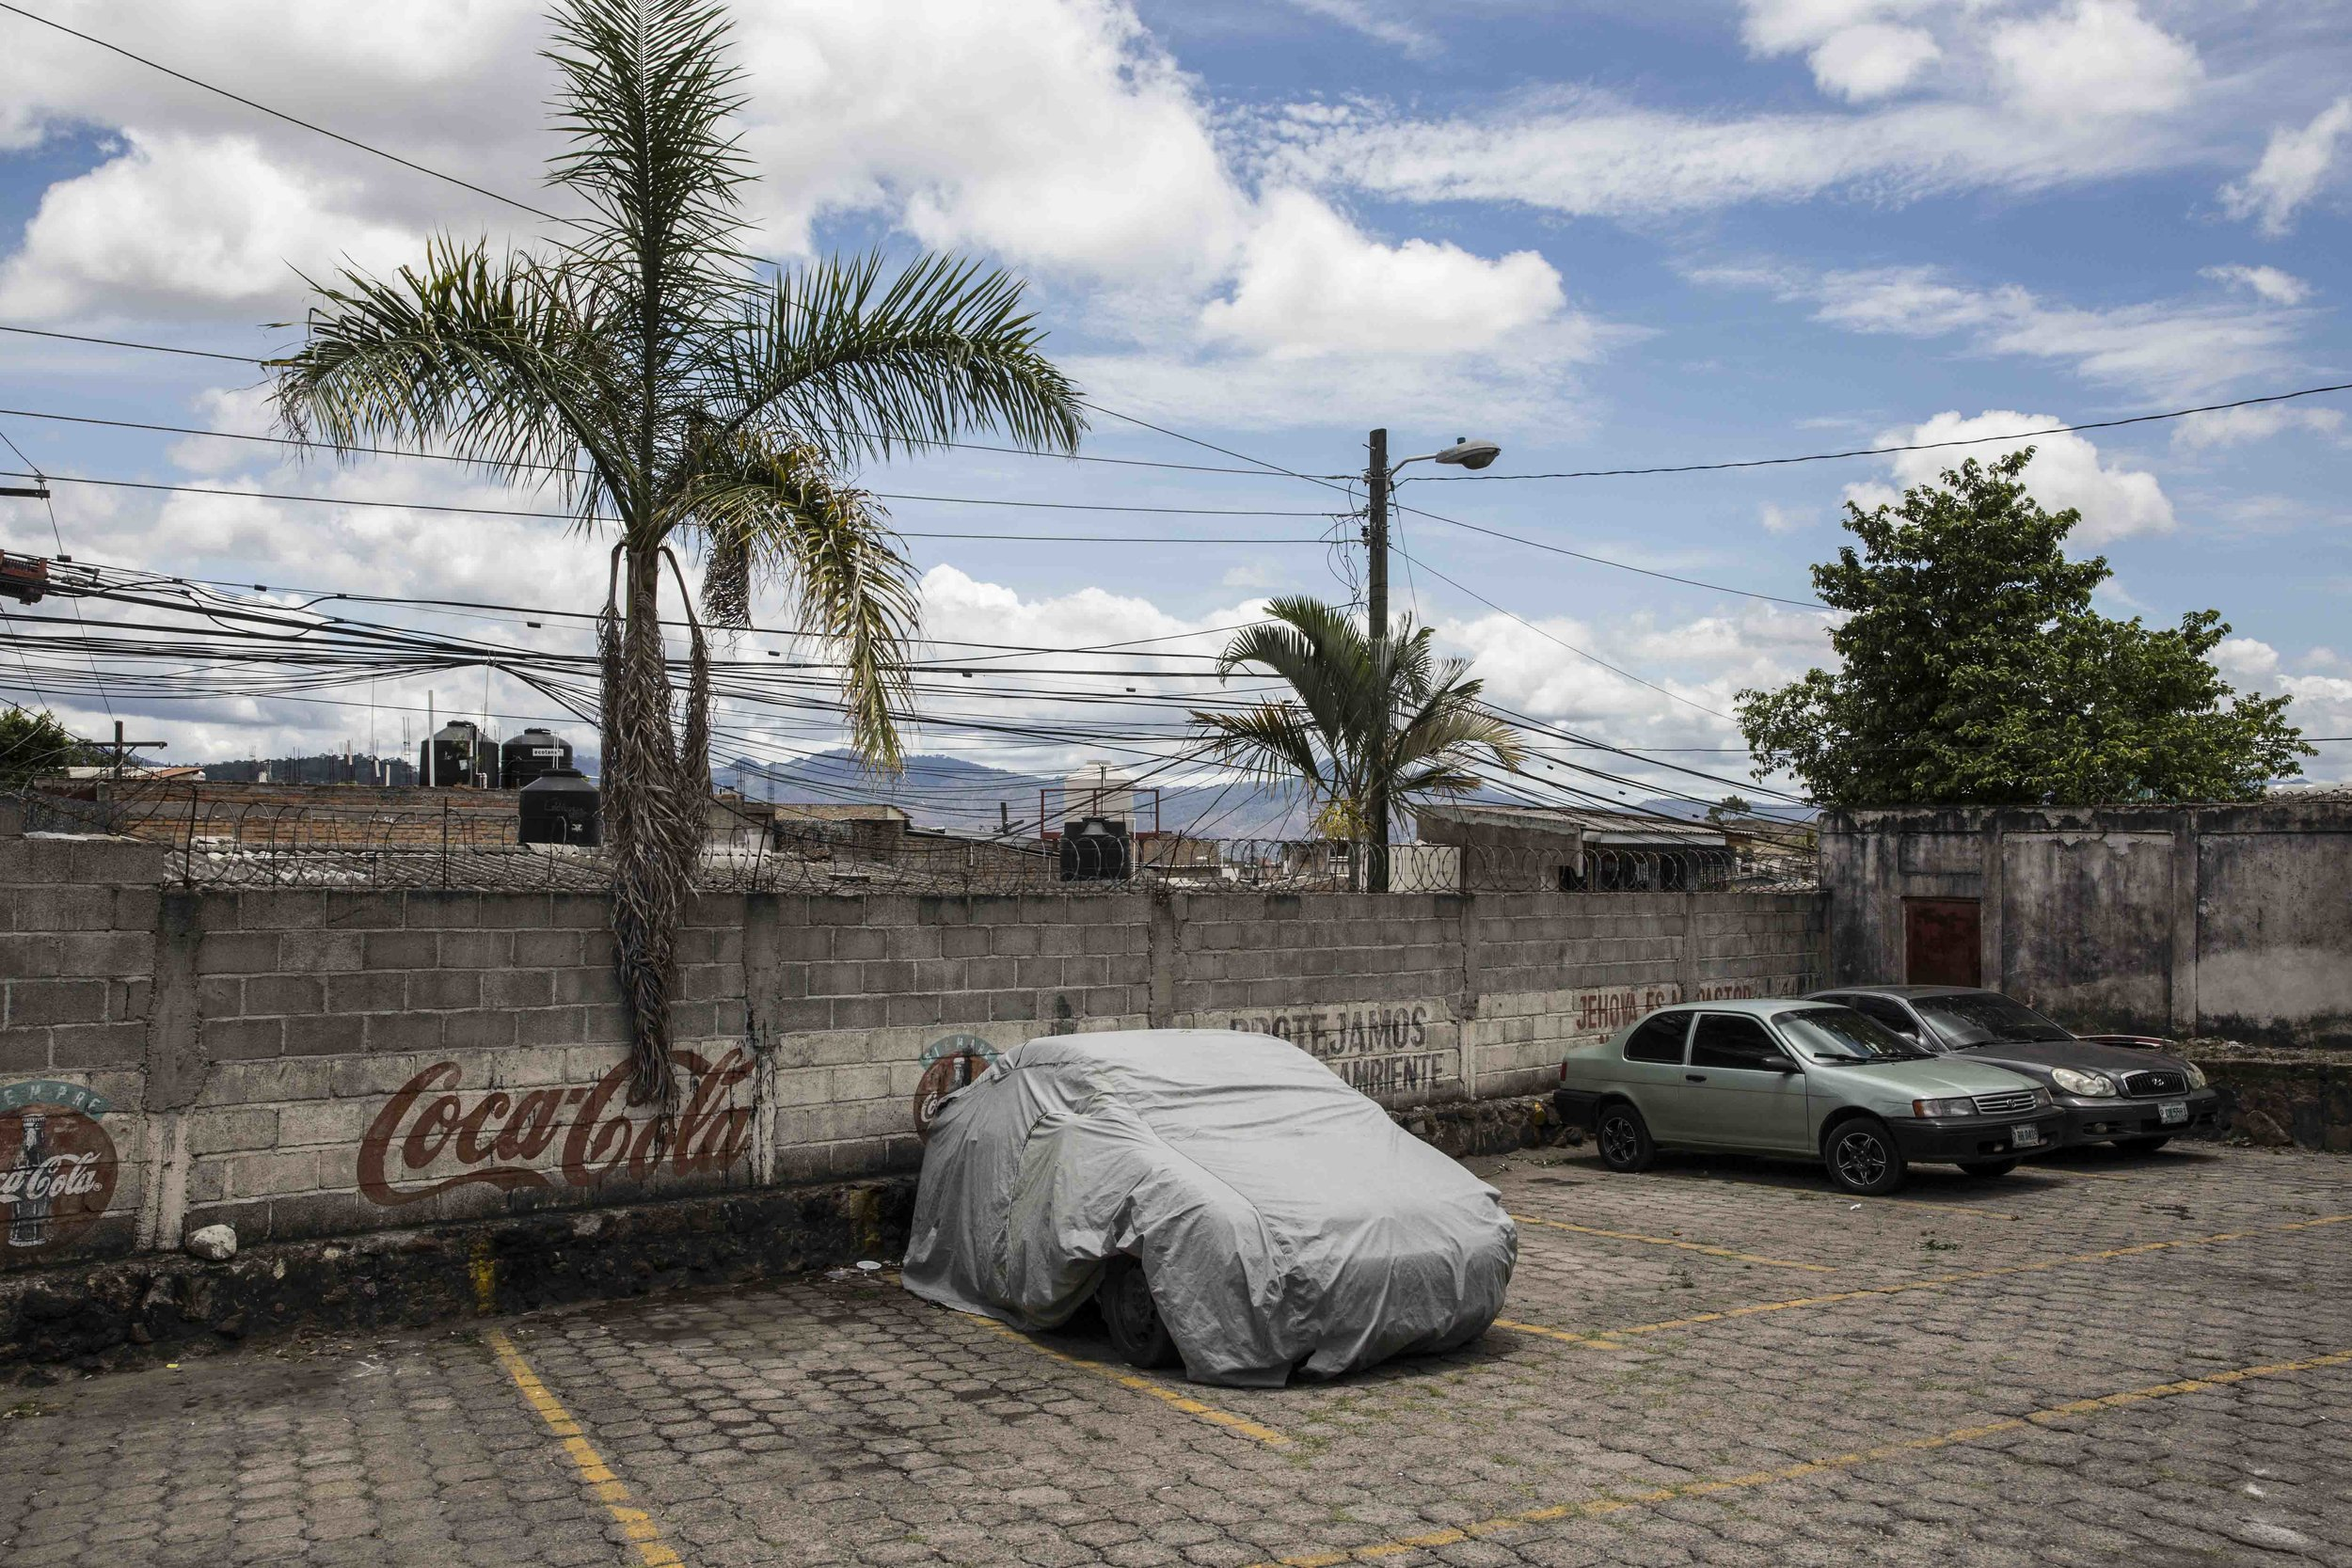 On the streets of Suyapa, one of the most dangerous neighborhoods of Tegucigalpa.